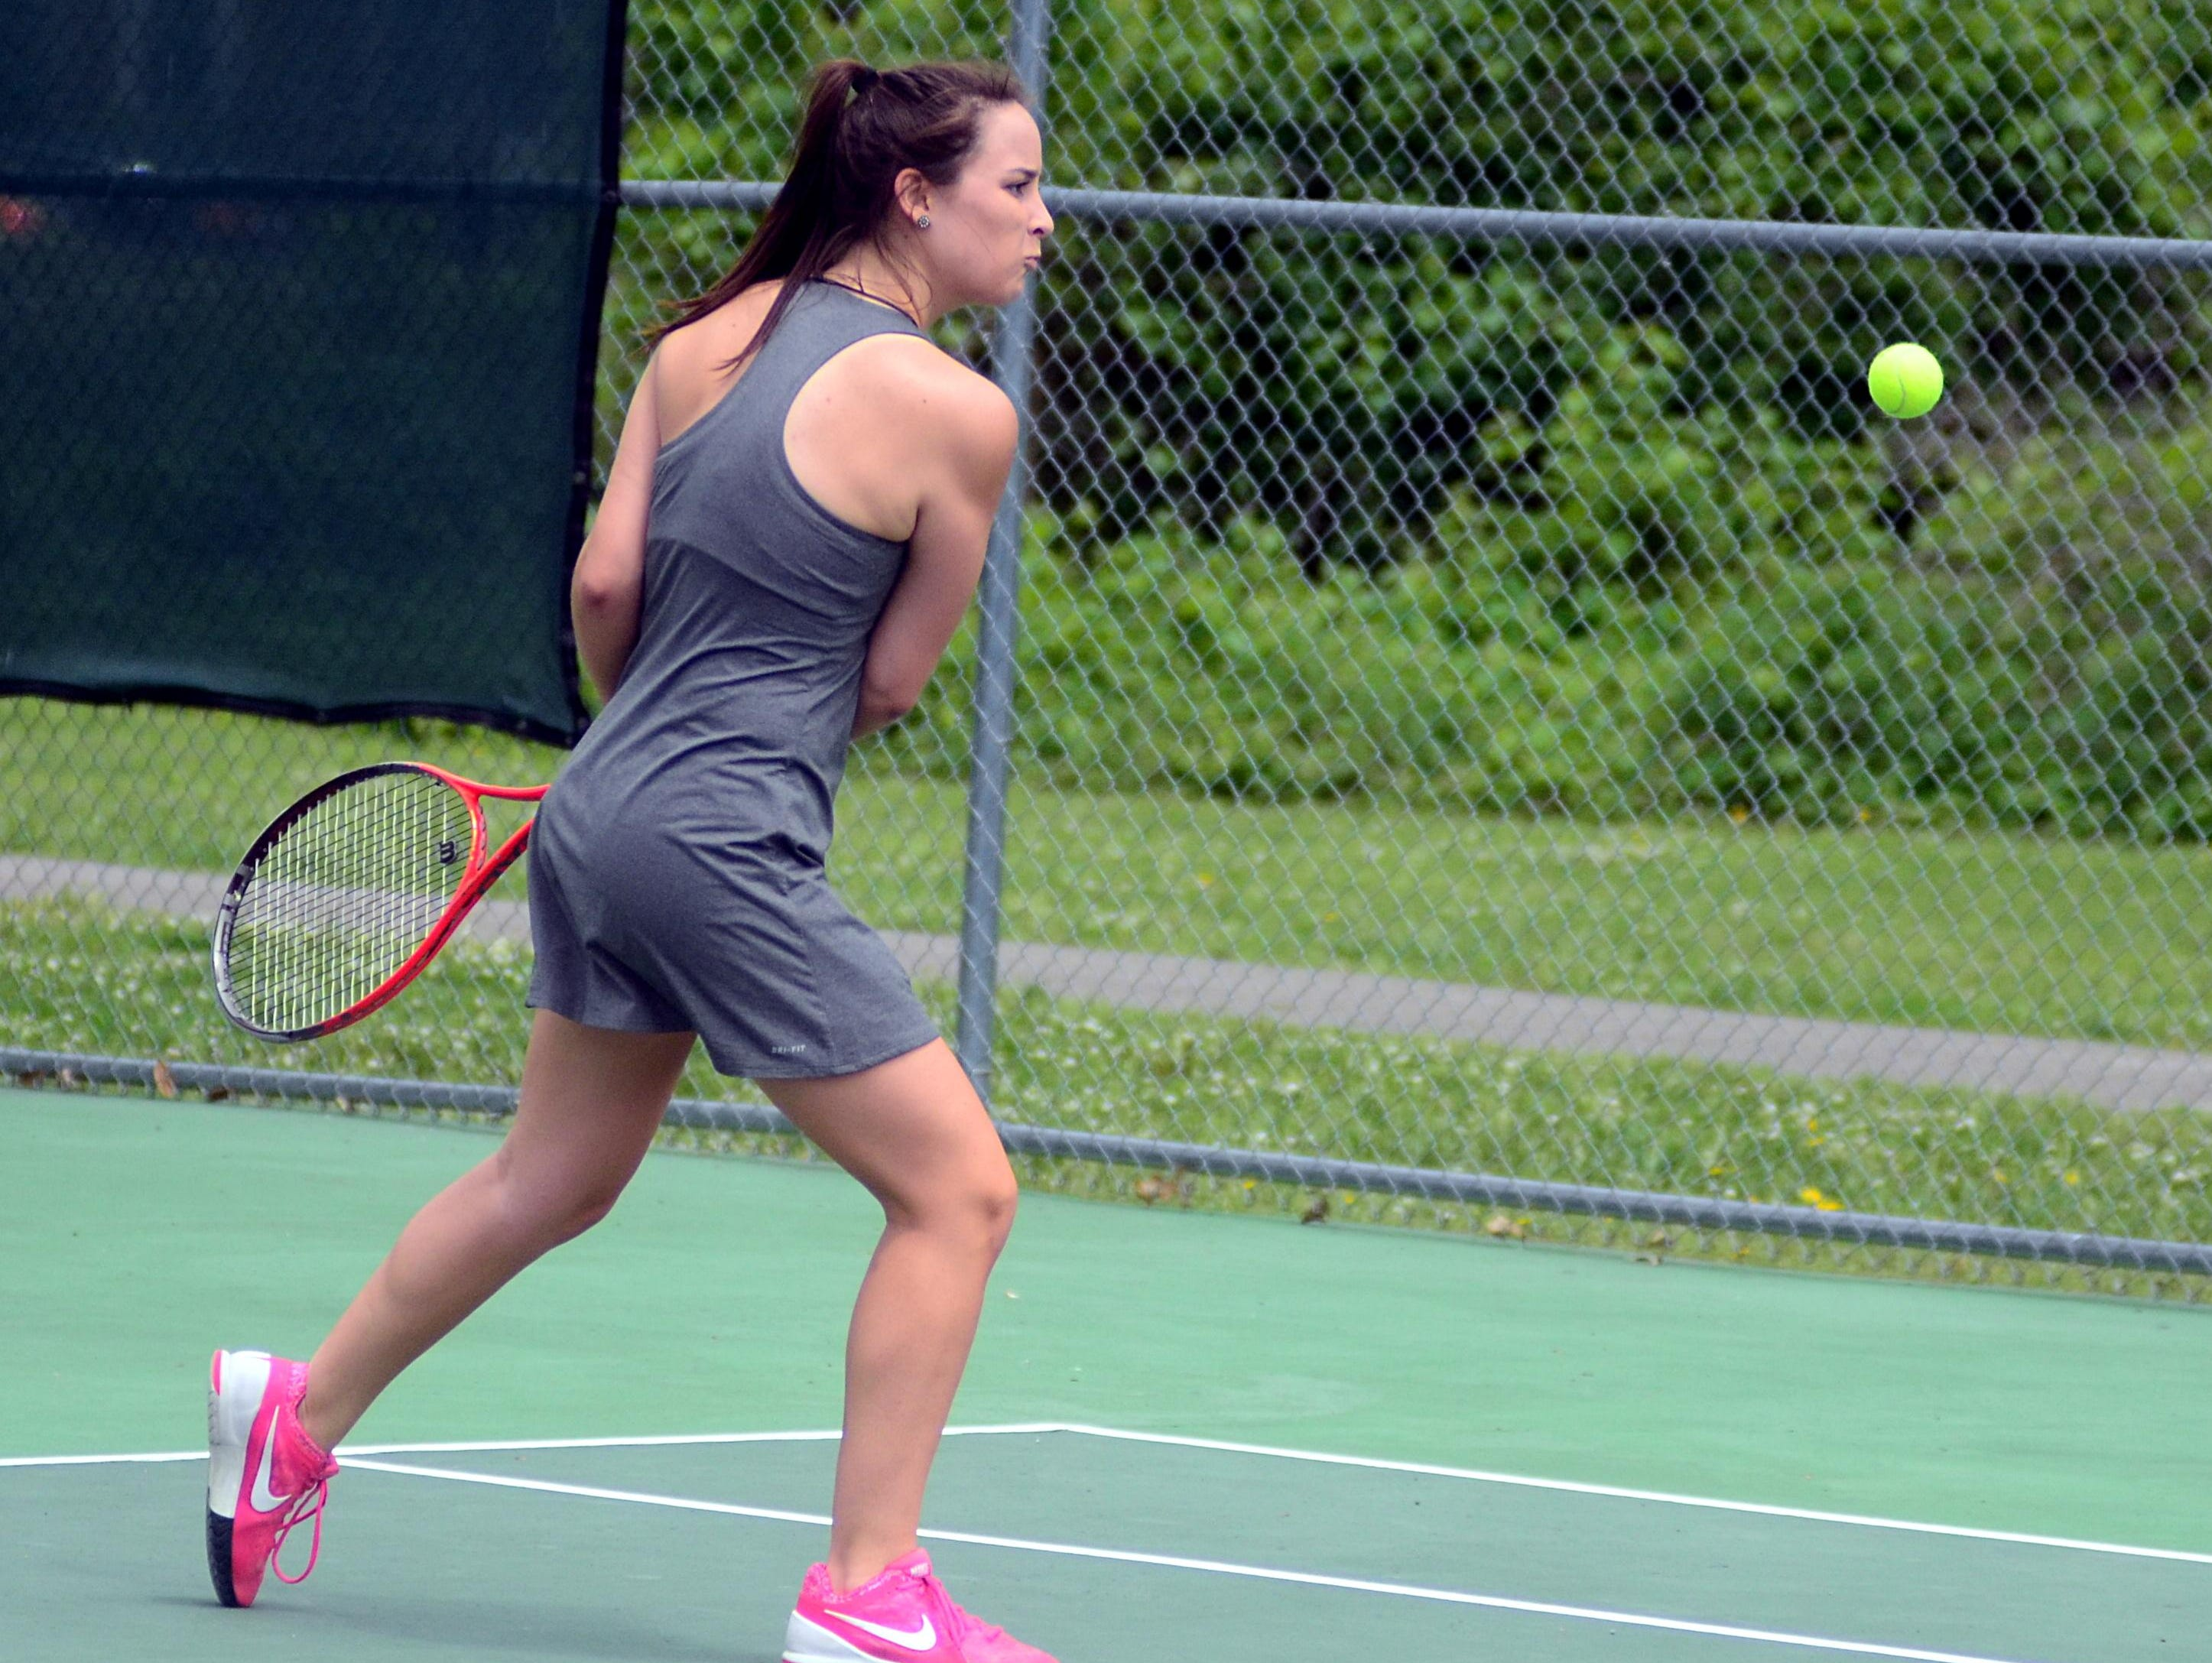 Hendersonville High sophomore Audrey Spurlock prepares to hit a backhand during Tuesday's District 9-AAA Individual Tennis Tournament. Spurlock suffered a three-set loss in the first round.